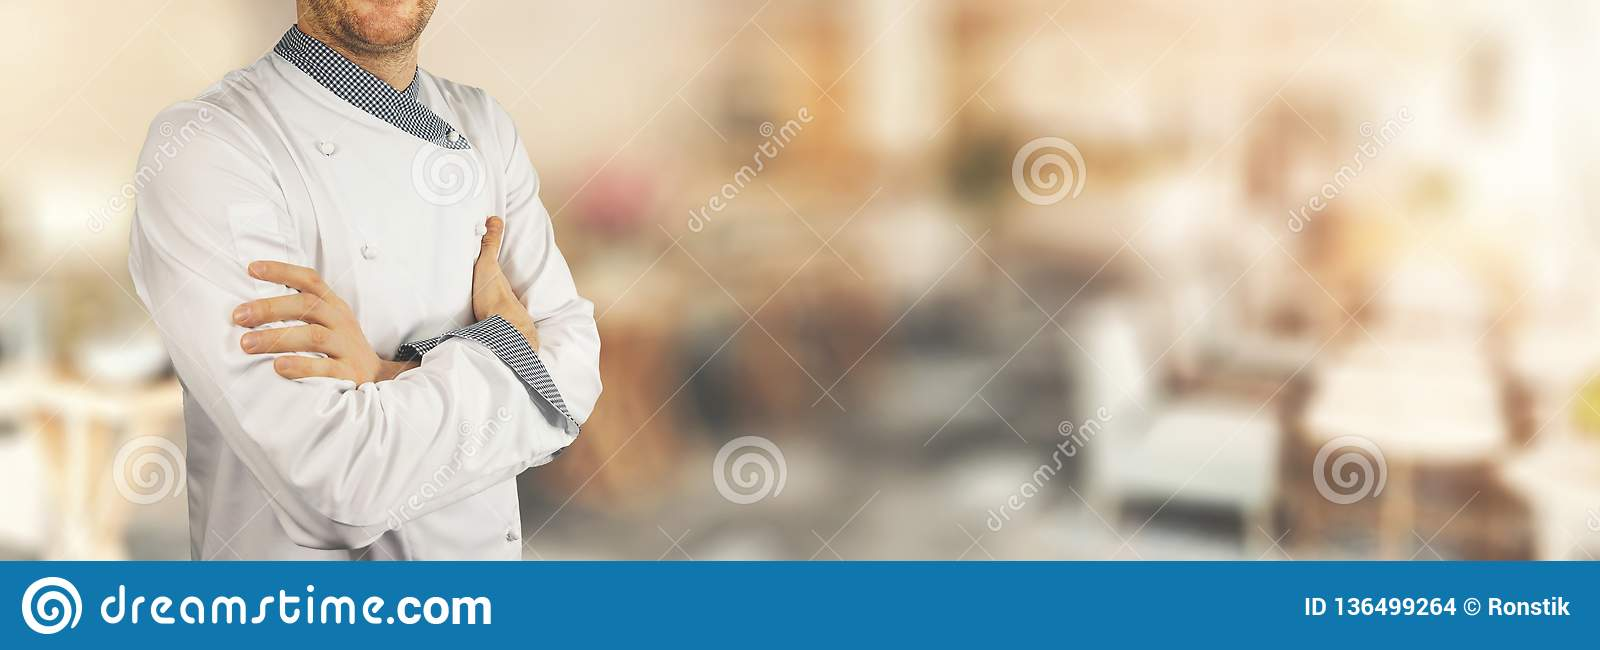 Chef standing in restaurant with crossed arms. banner